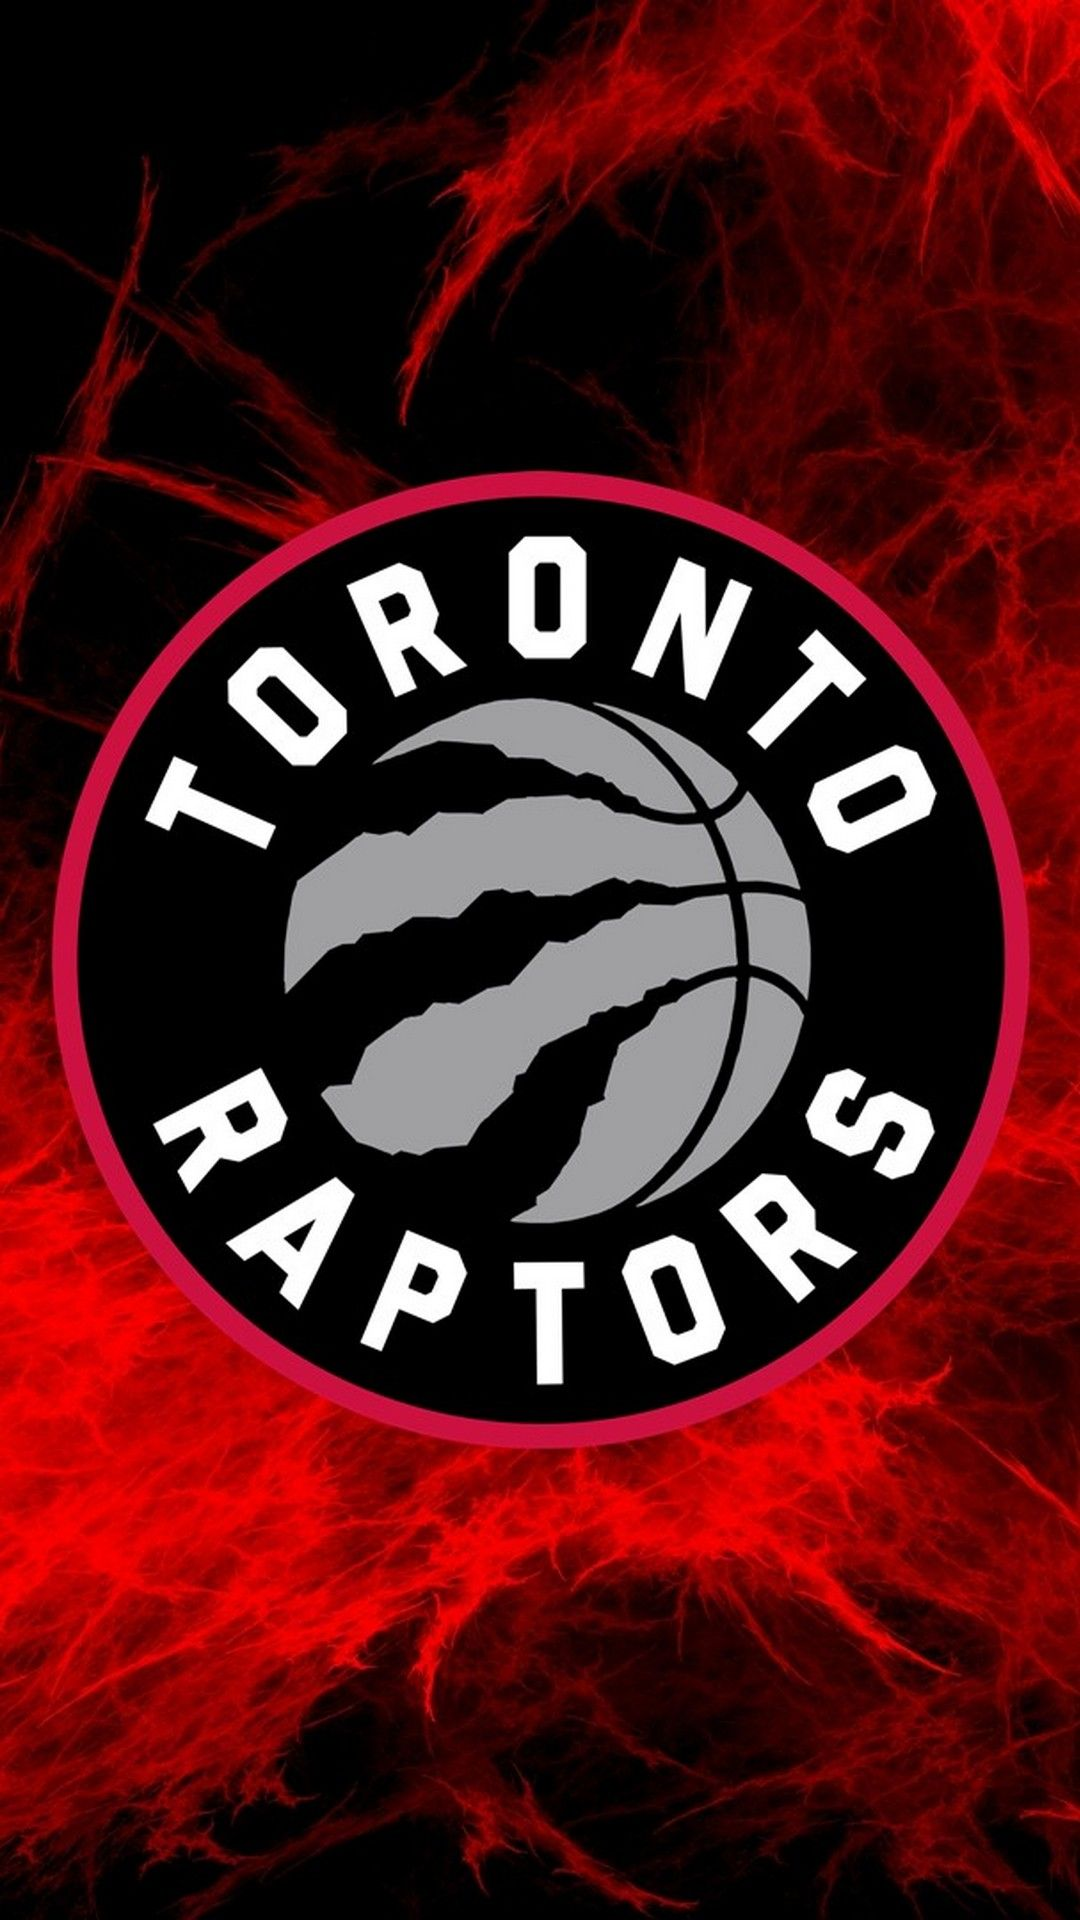 8dd2c895d Toronto Raptors Wallpaper For Android with image resolution 1080x1920  pixel. You can make this wallpaper for your Android backgrounds